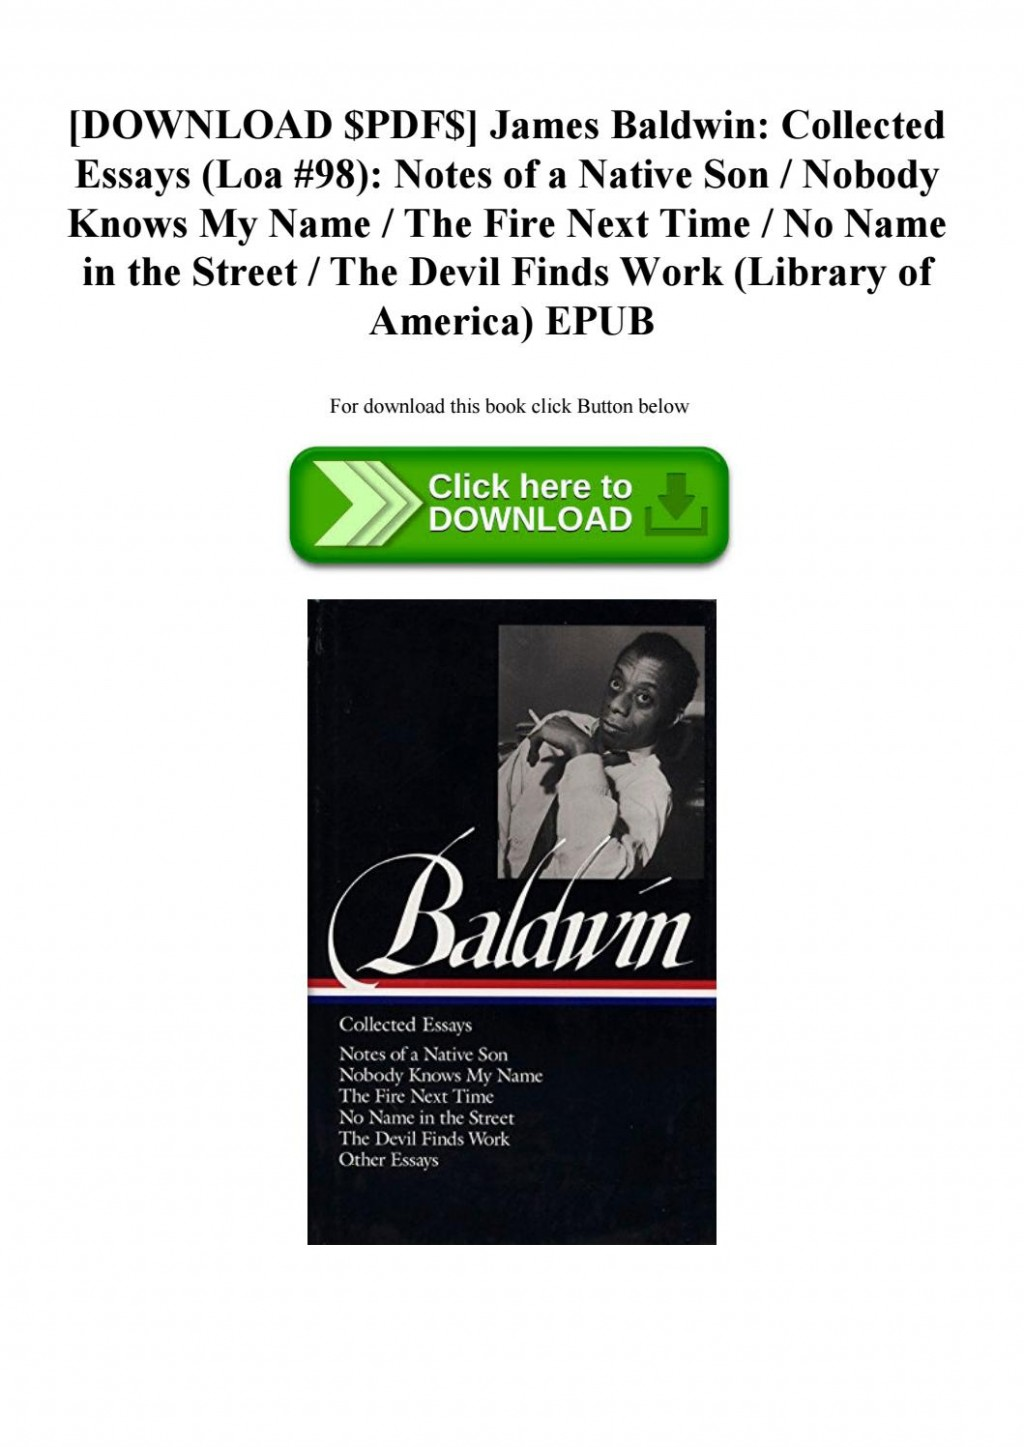 006 Page 1 James Baldwin Collected Essays Essay Wondrous Google Books Pdf Table Of Contents Large